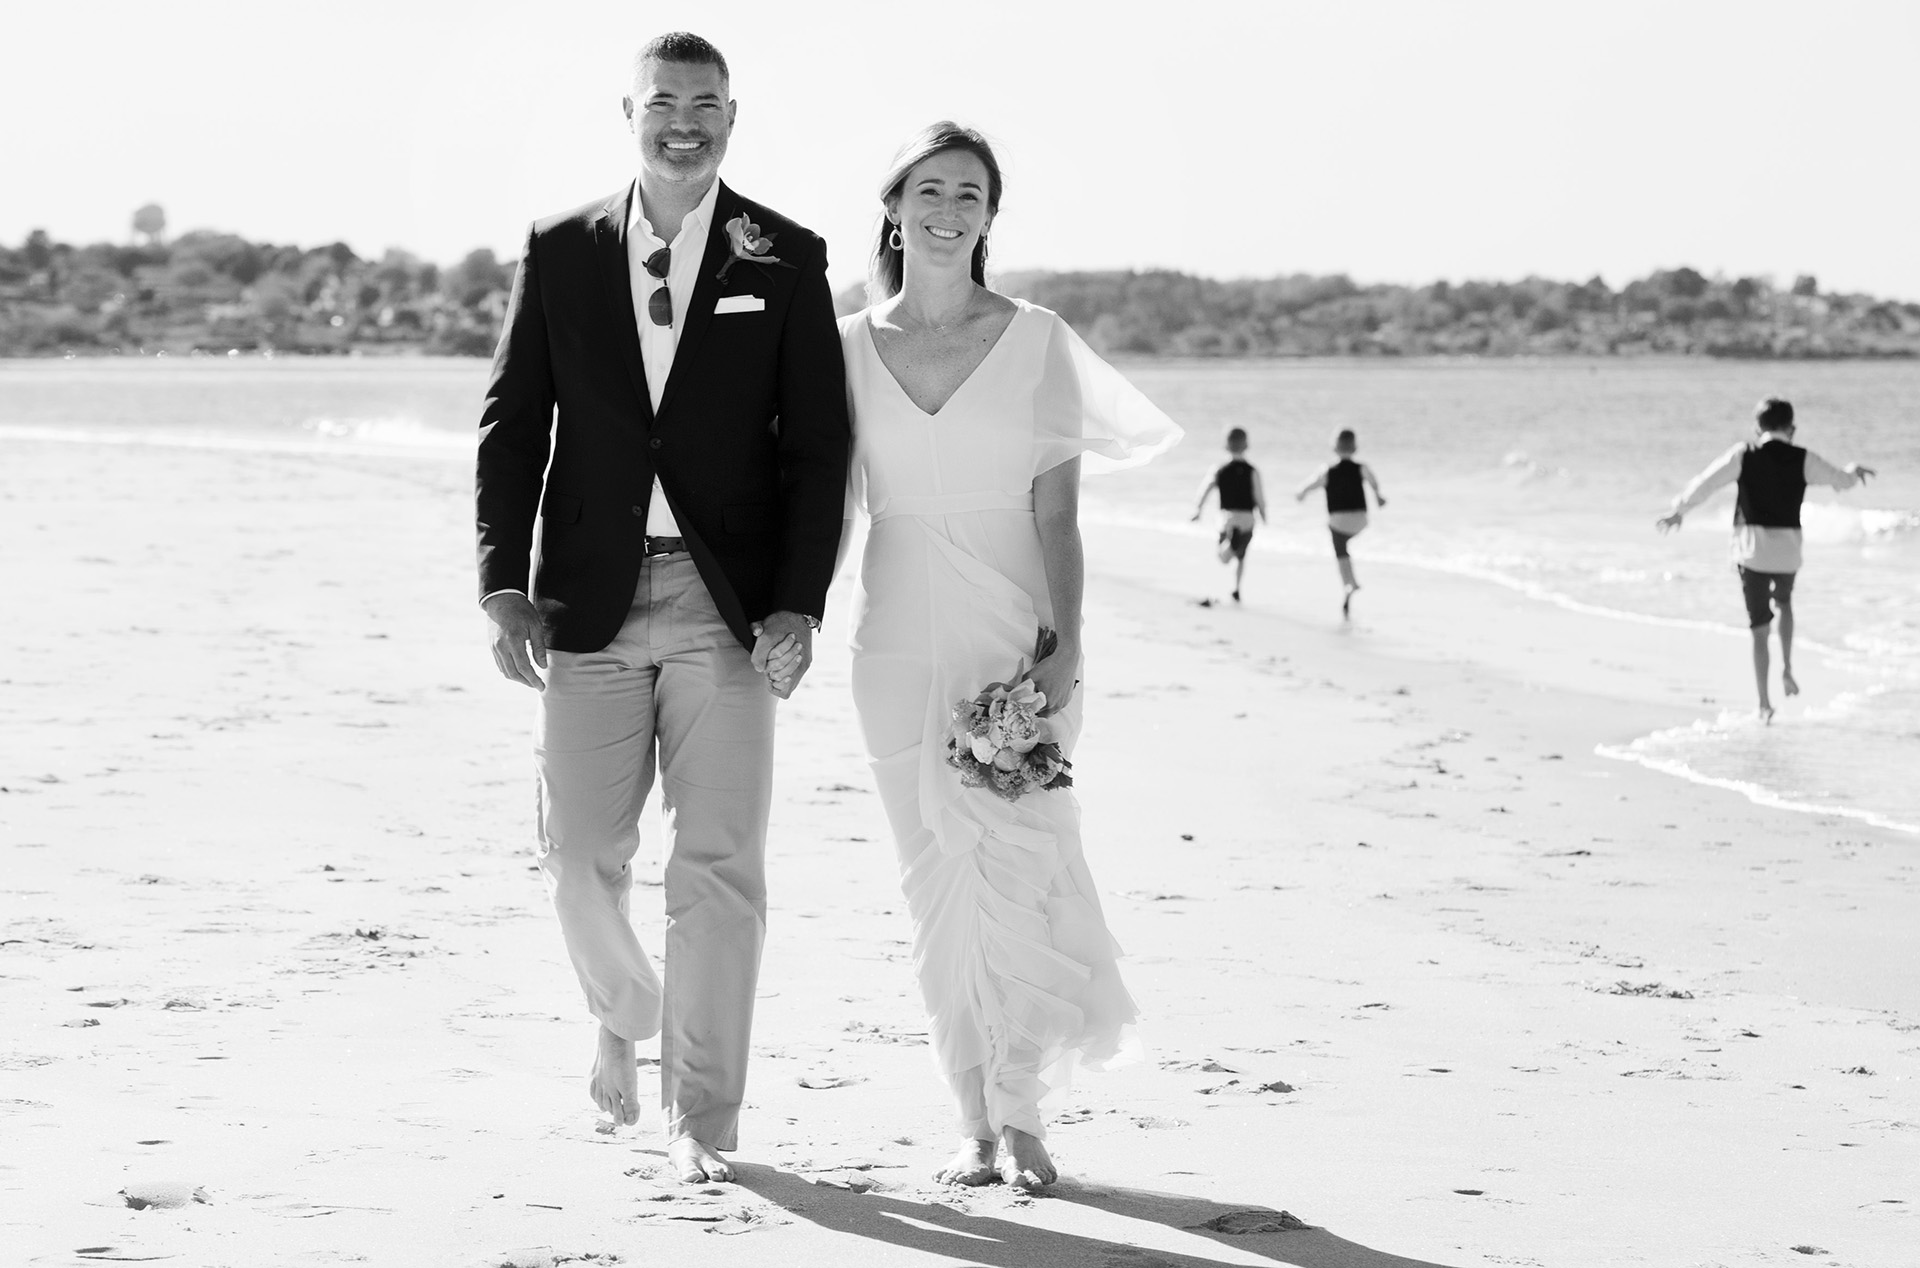 MA Wedding Elopement - Beach Sand Portrait   The couple strolling on the beach with the boys running in the background